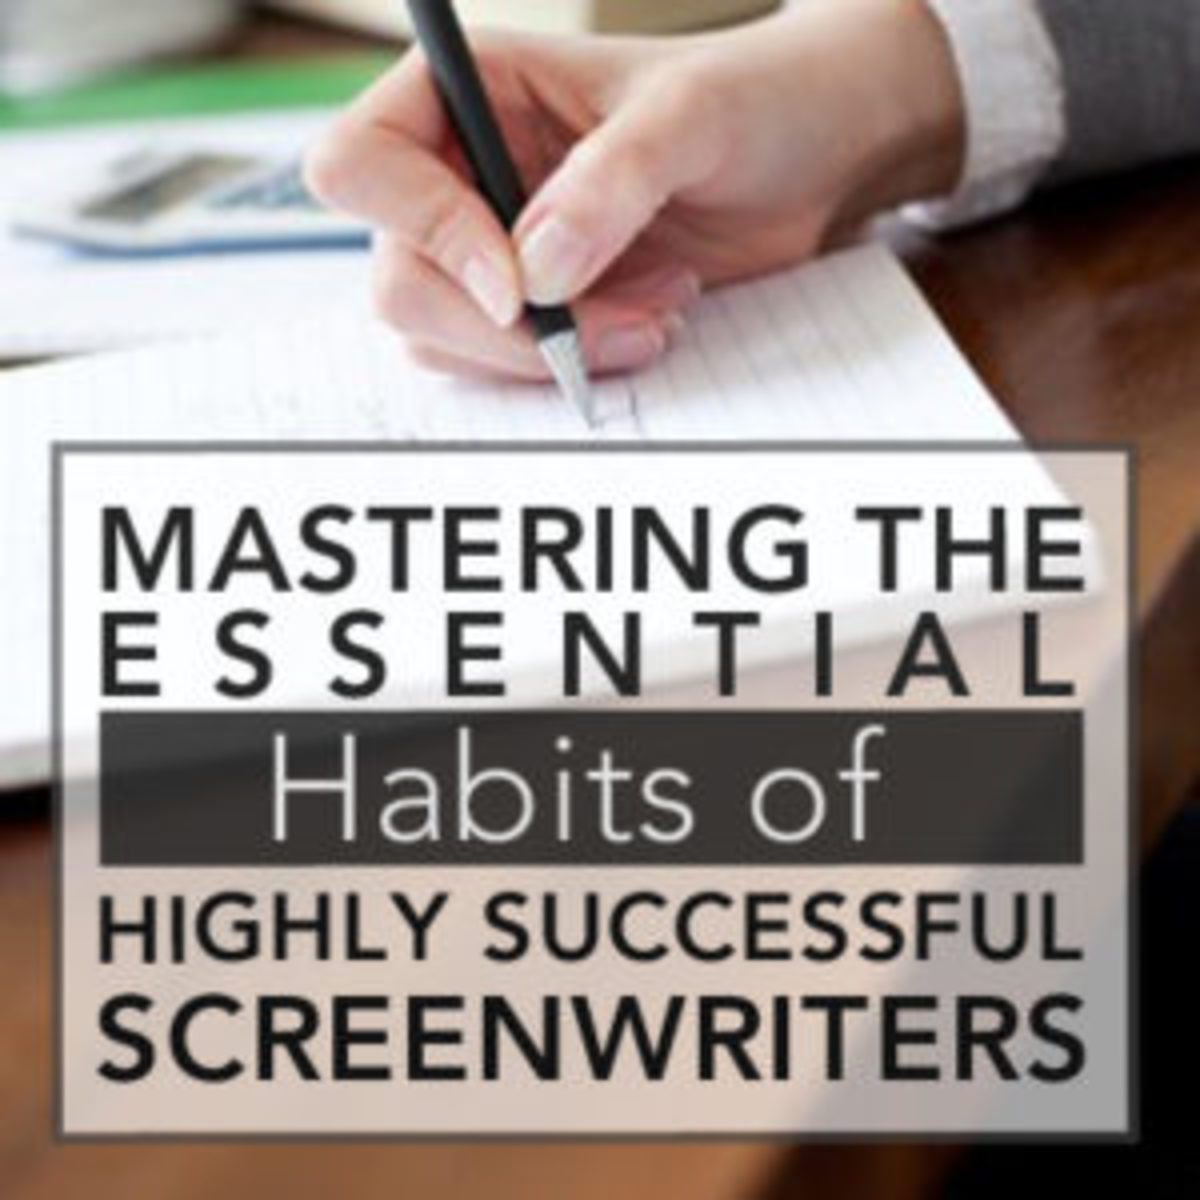 Learn the secrets to writing success with Karl Iglesias' self-paced course!